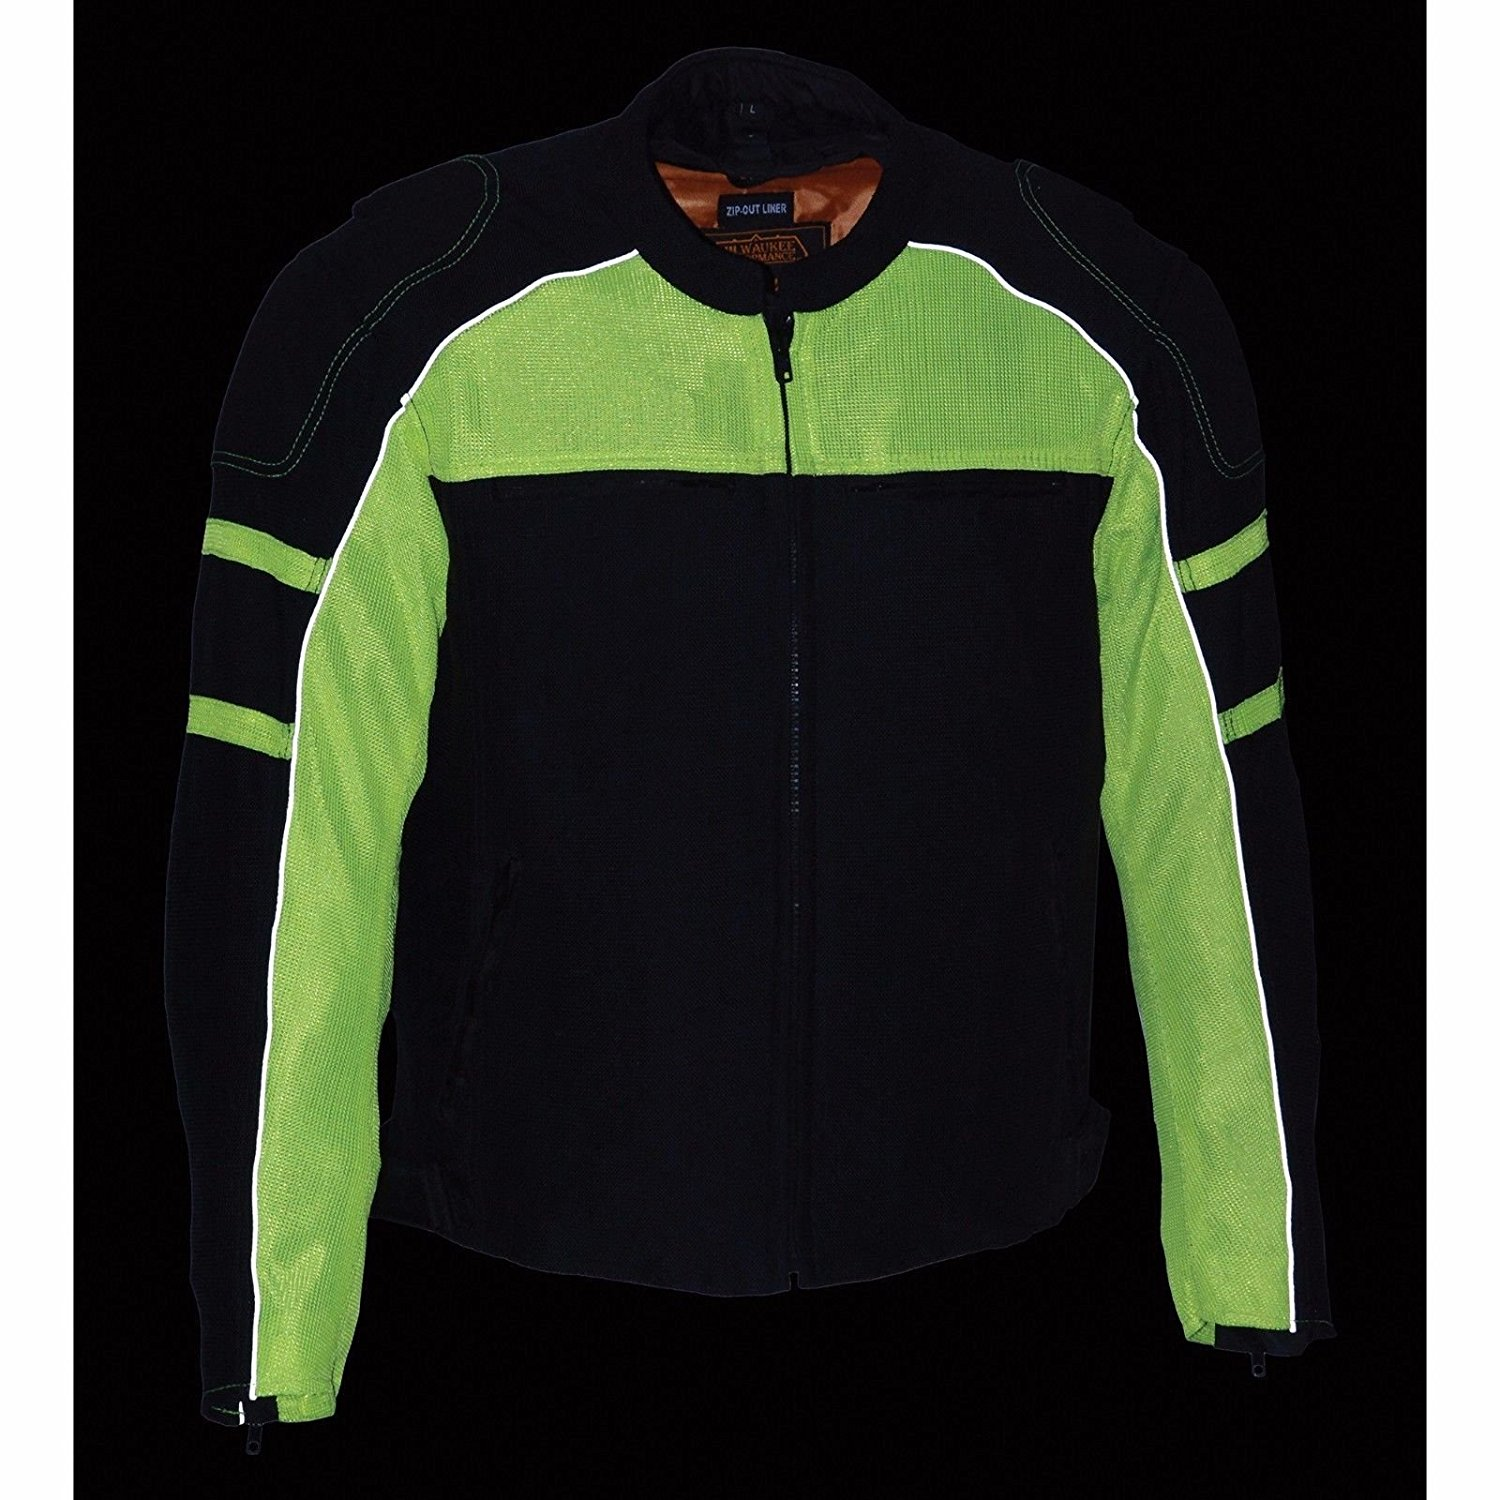 Mens Motorcycle Biker Jacket with armors & Rain jacket Liner New Mesh Blk/Green (S Regular)